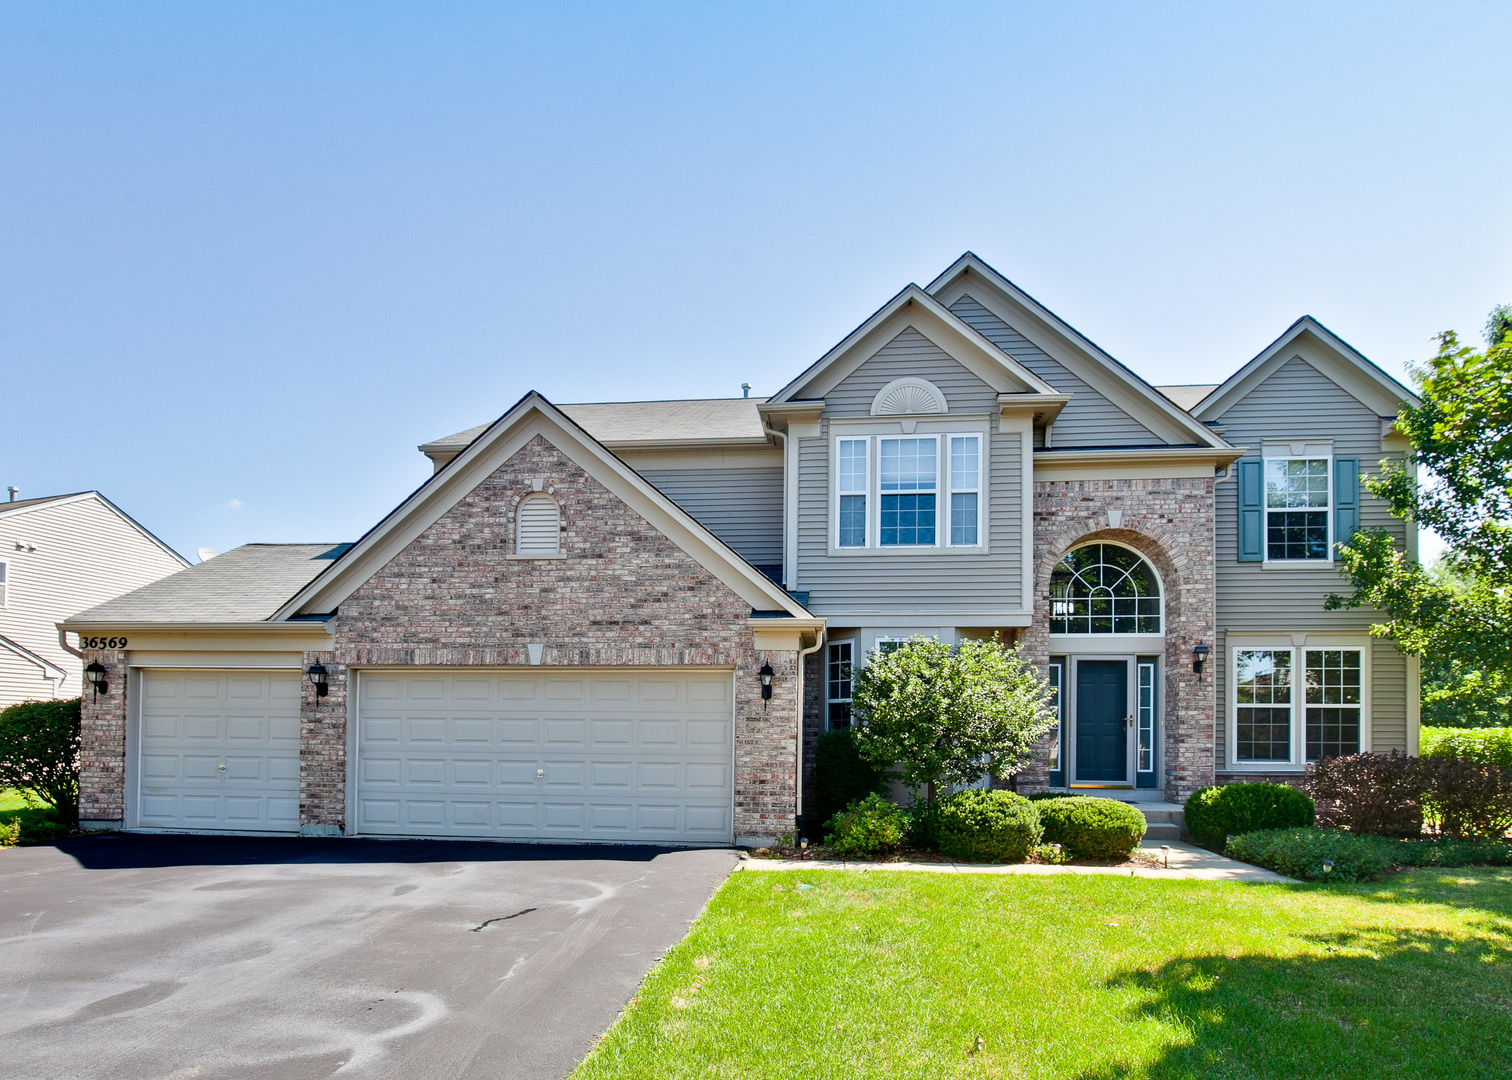 36569 North Yew Tree Drive, Lake Villa, Illinois 60046